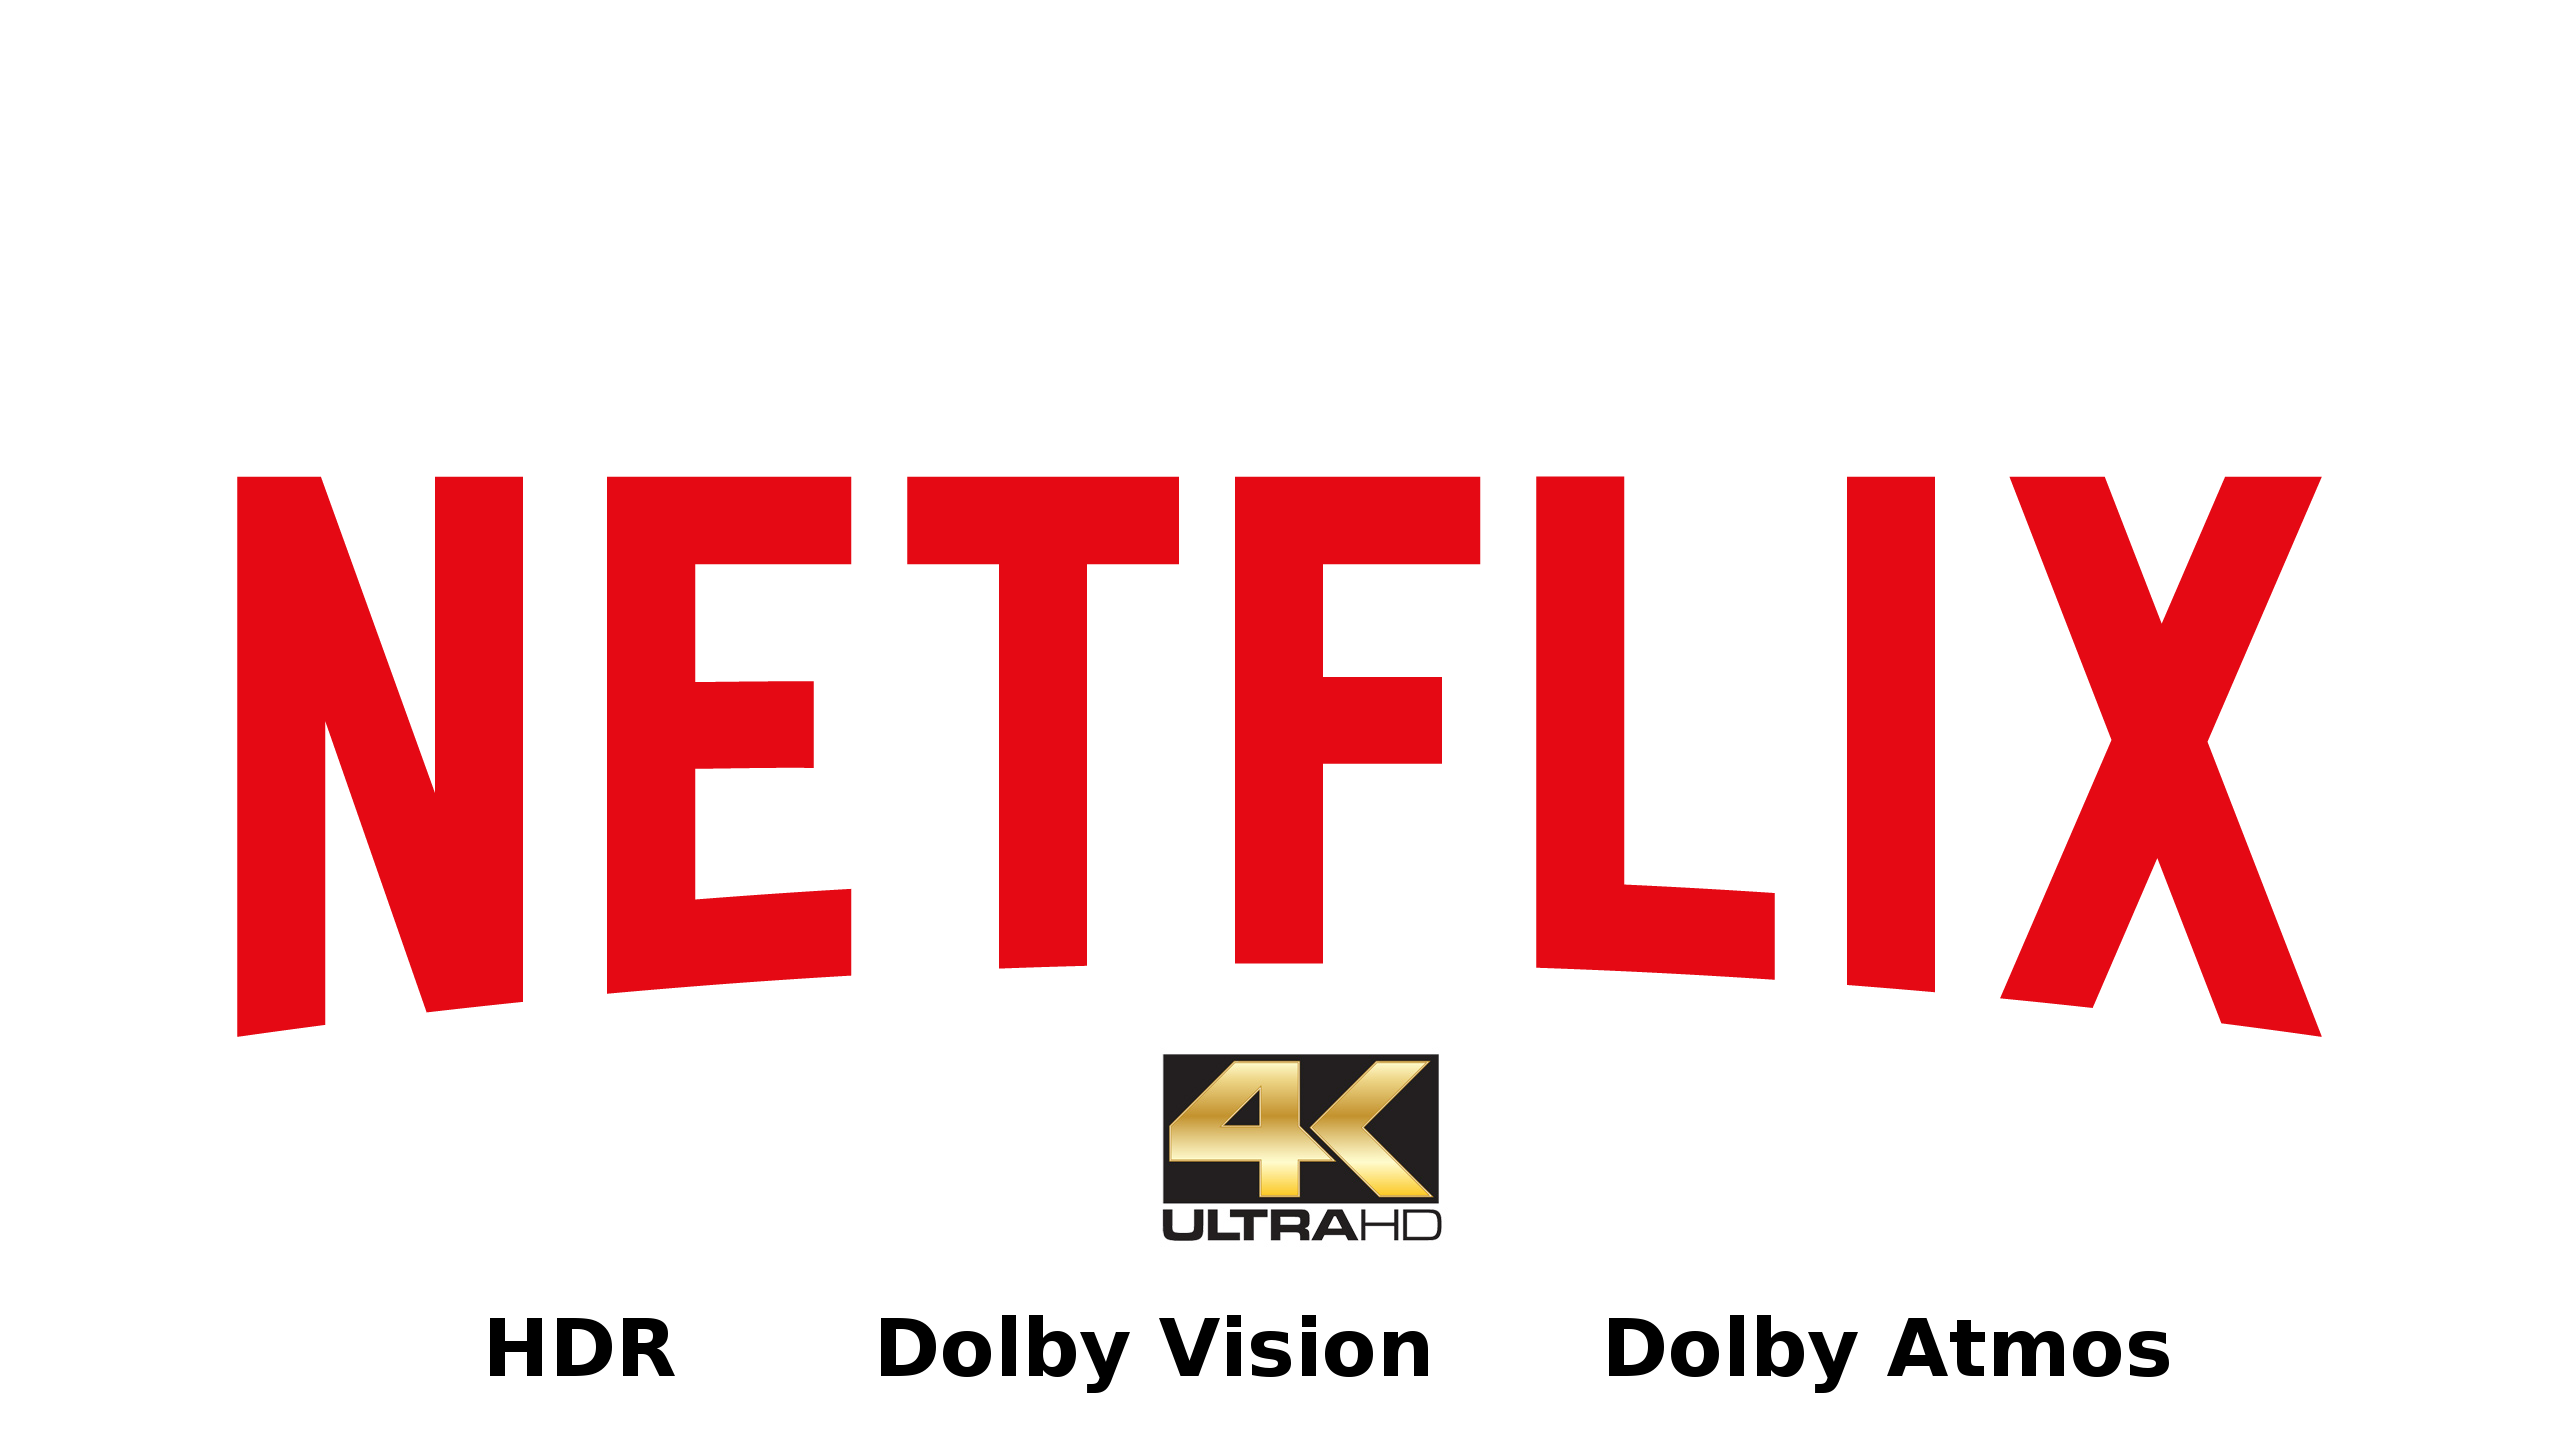 Netflix_Logo_DigitalVideo-uhd_4k-1-1